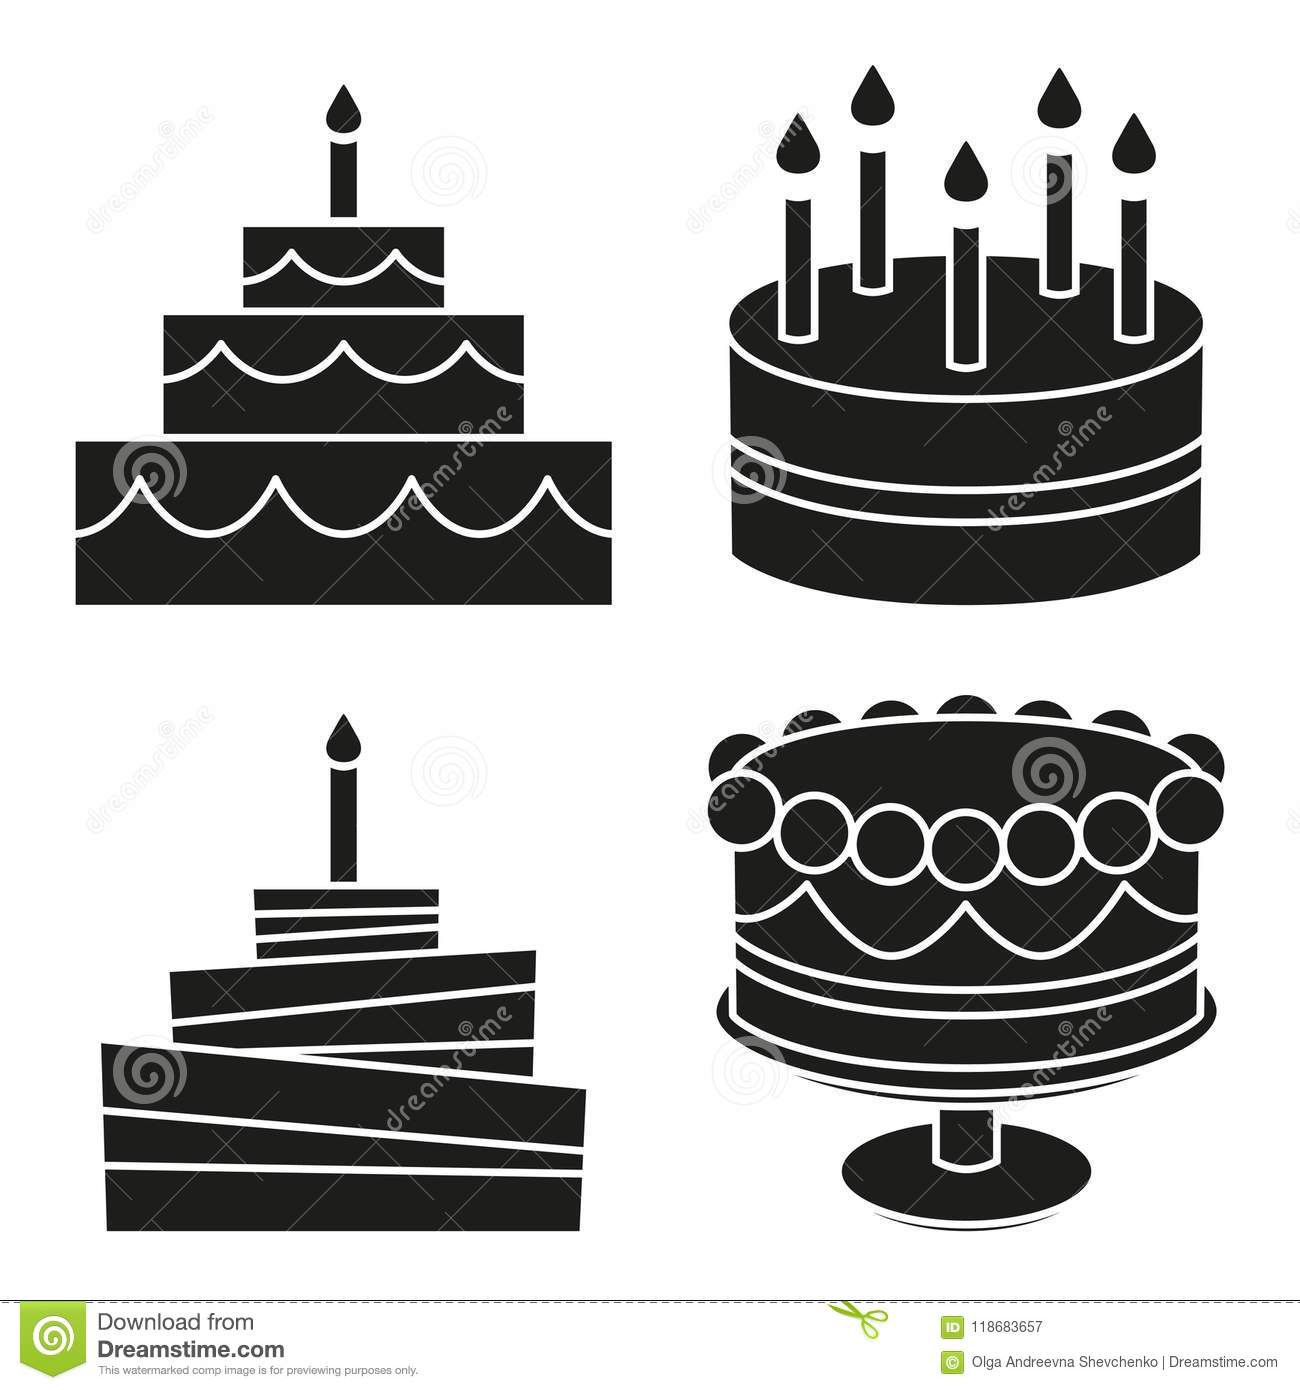 Miraculous Black And White Birthday Cake Silhouette Set Stock Vector Funny Birthday Cards Online Alyptdamsfinfo